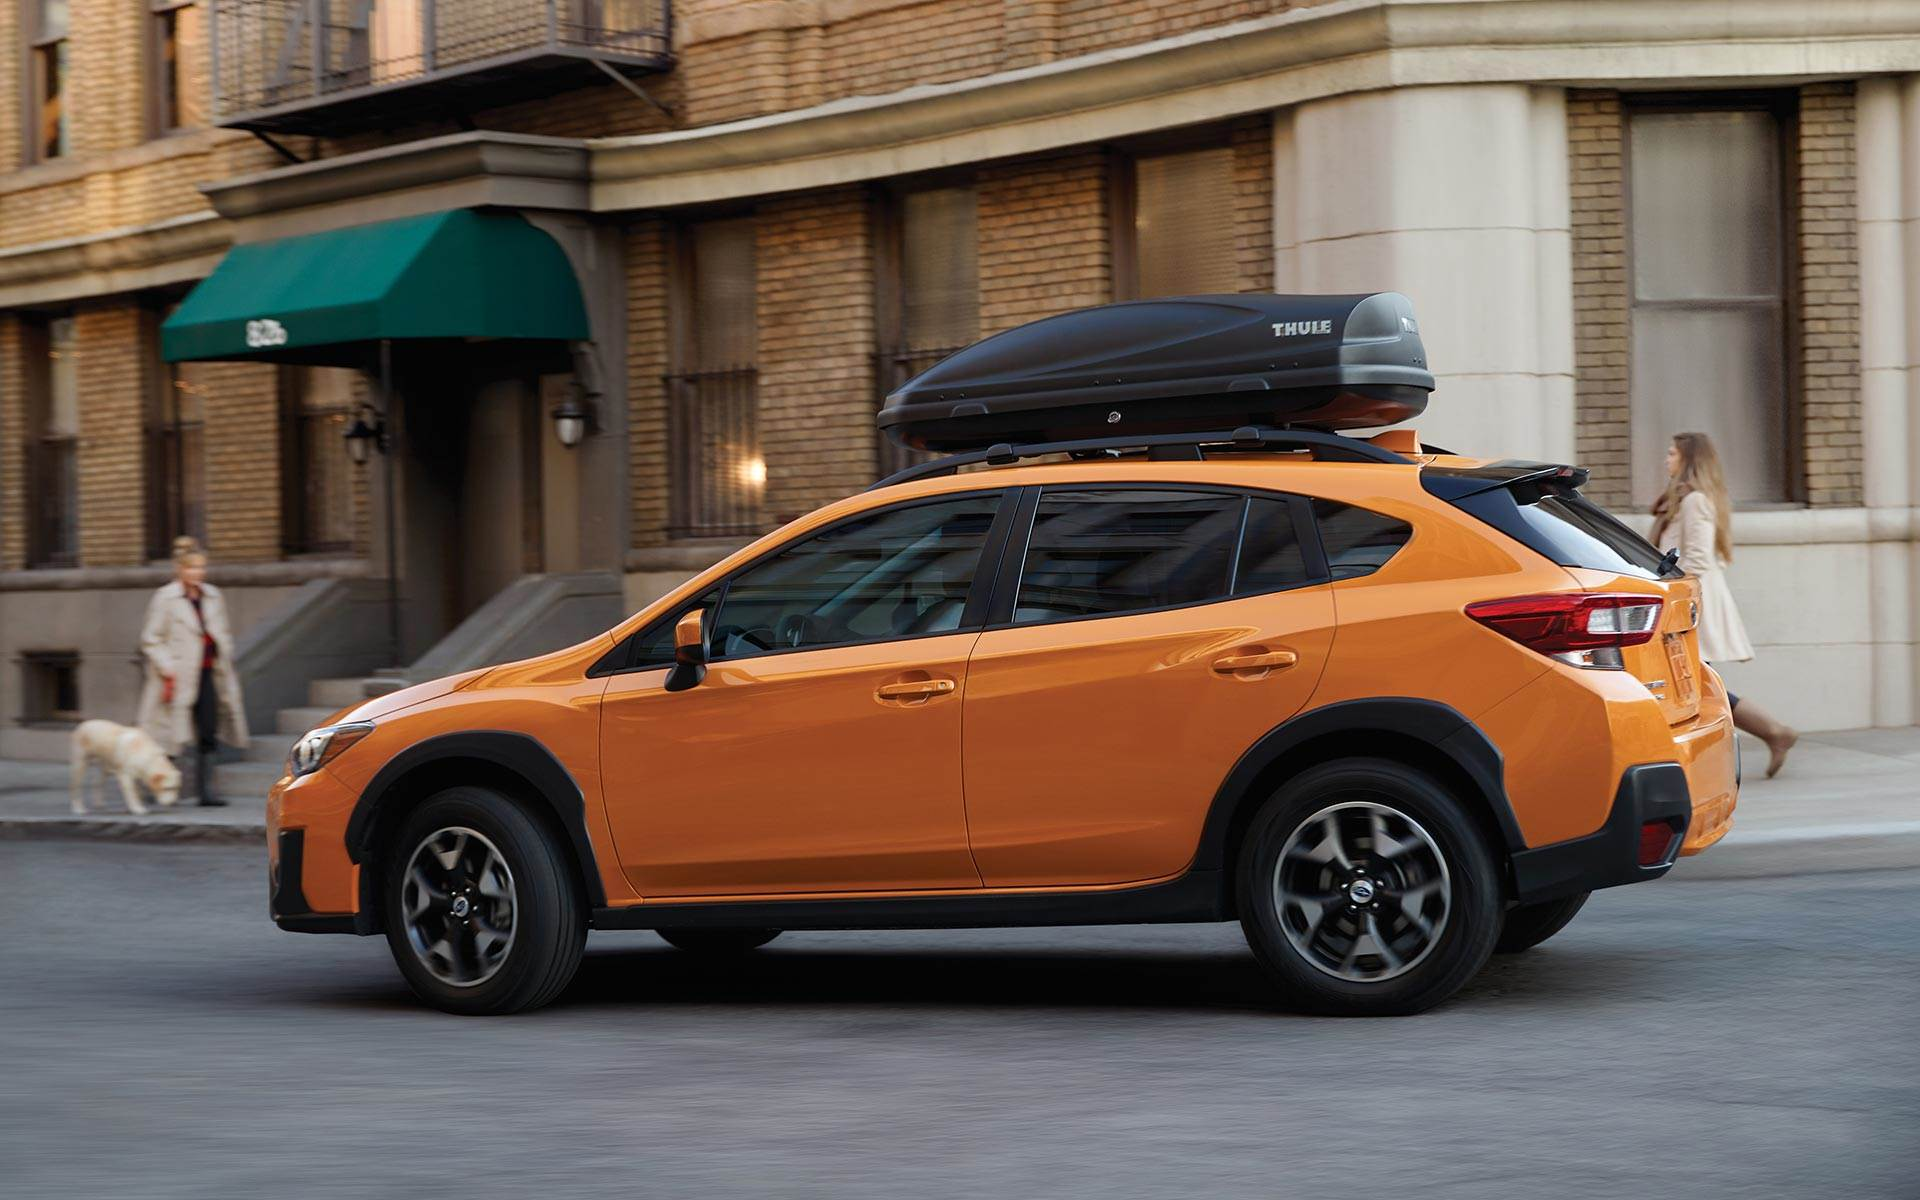 2019 Subaru Crosstrek Ramsey NJ